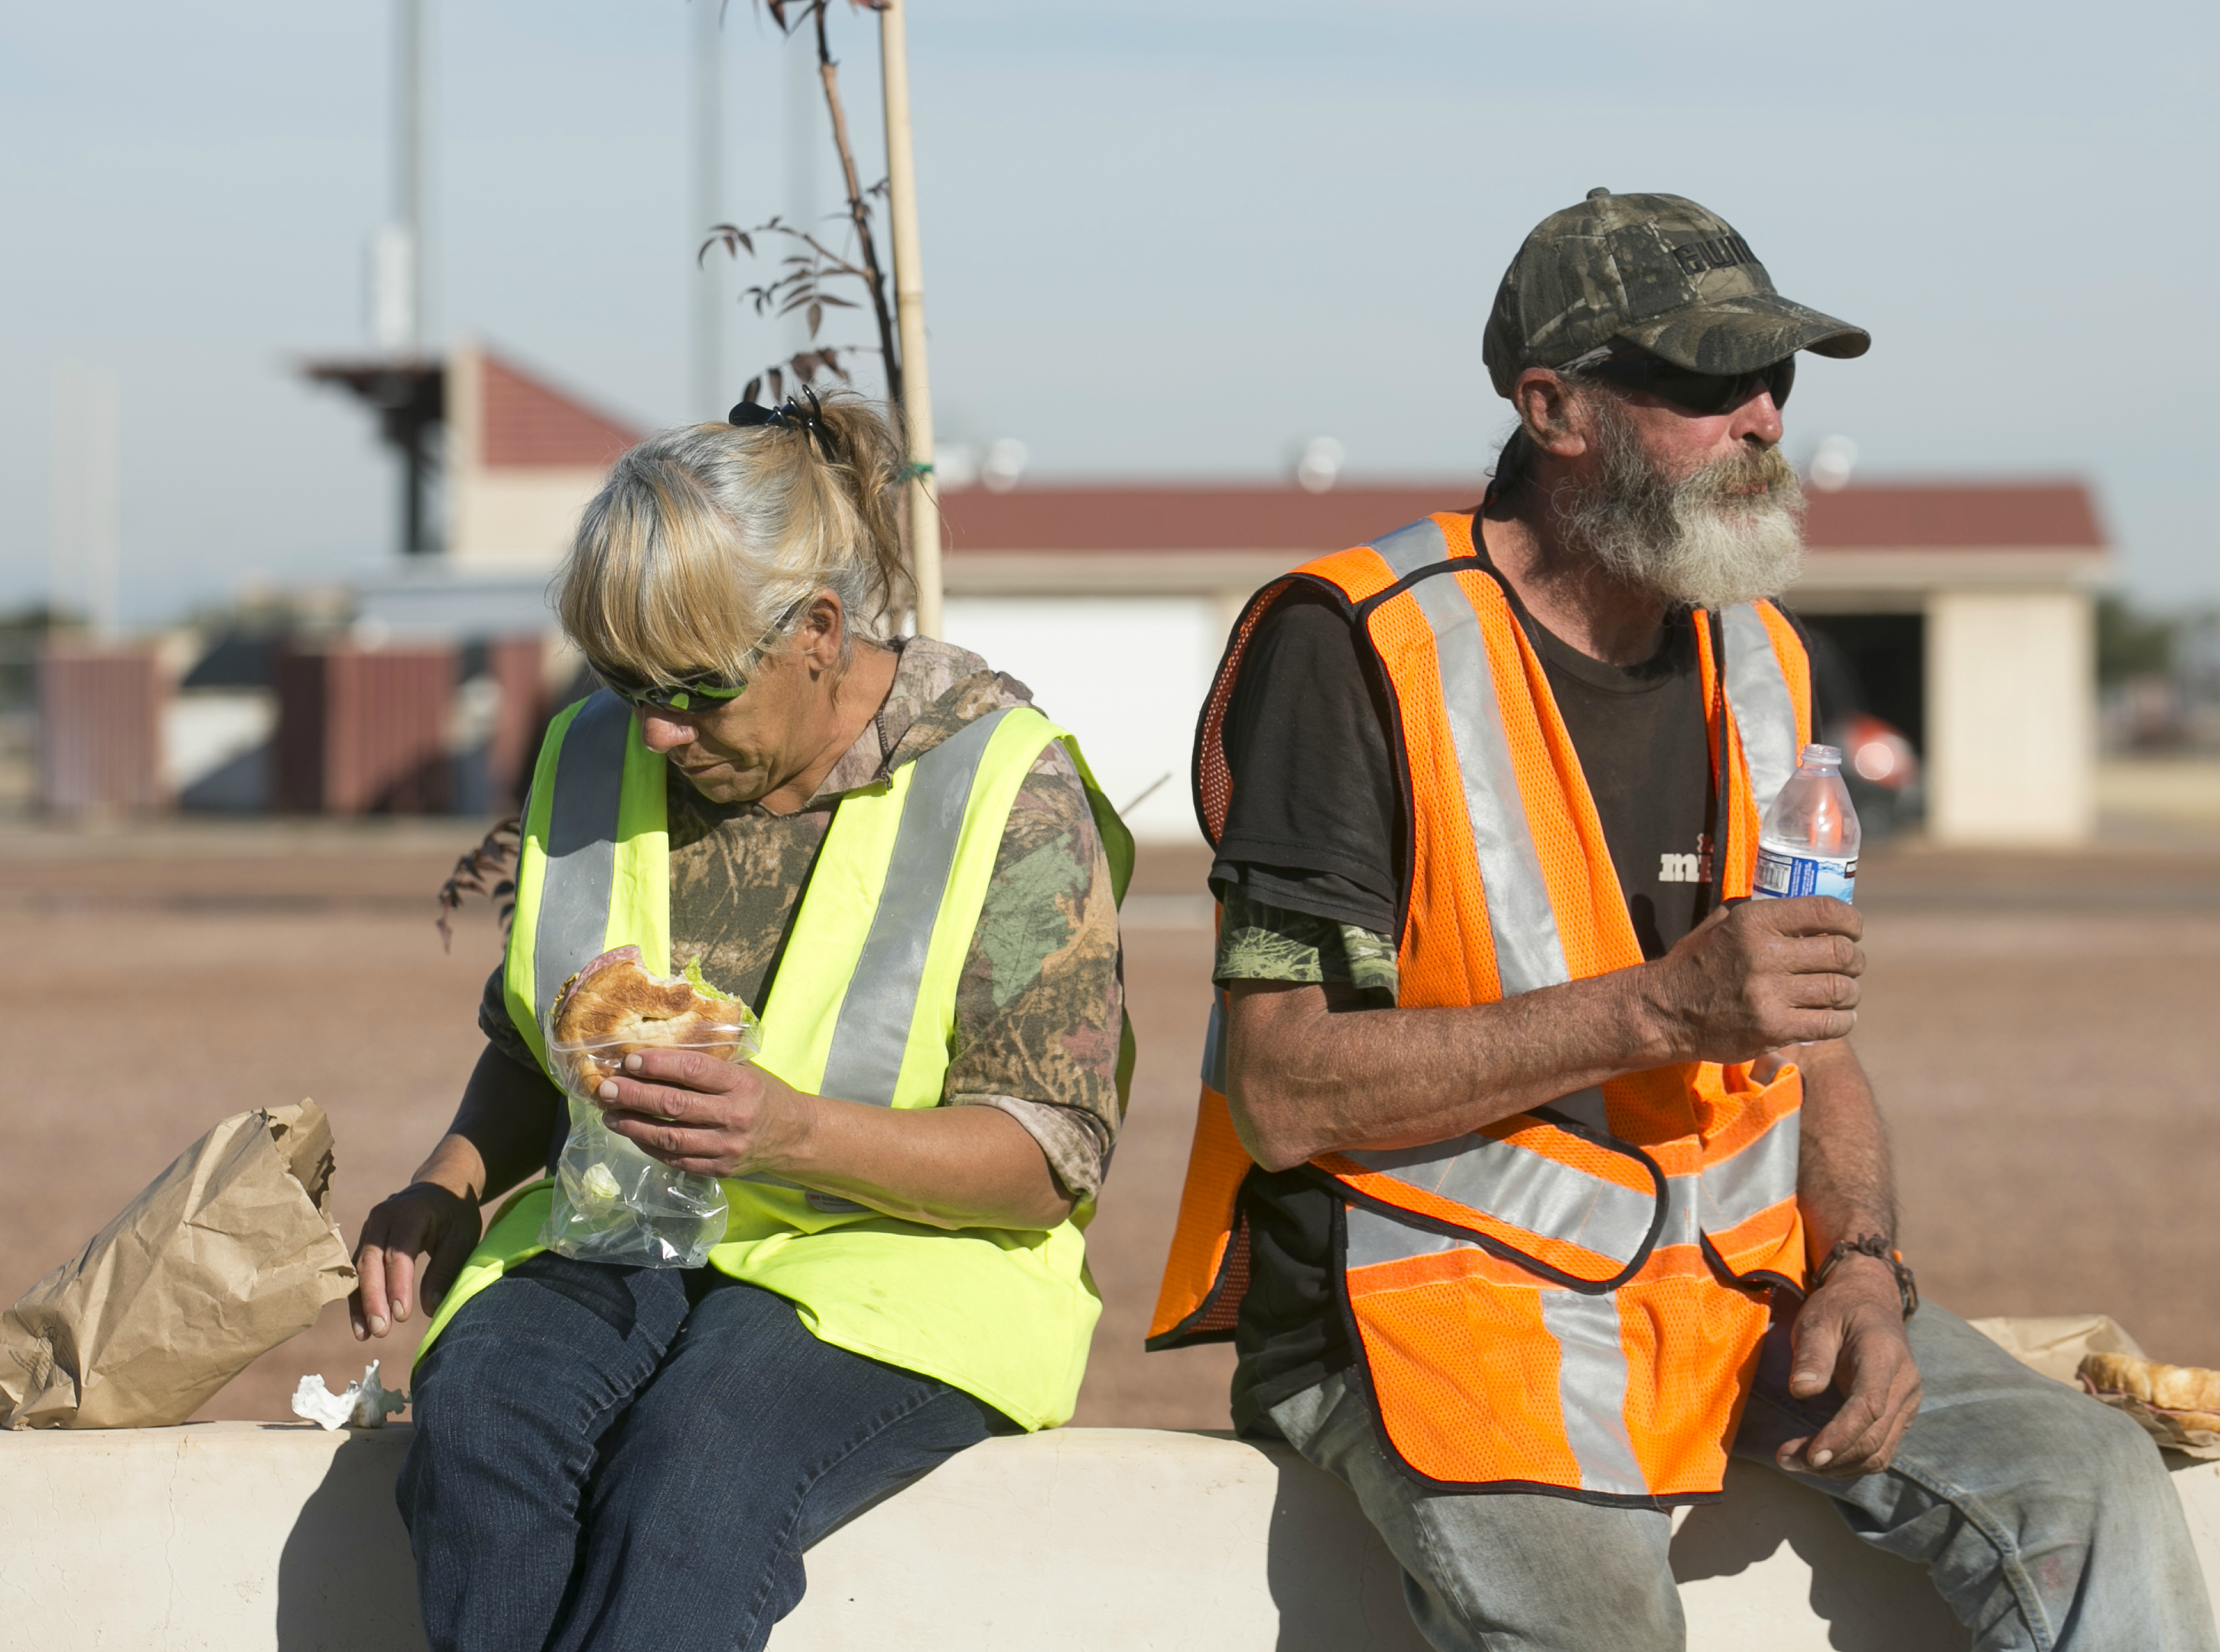 Jeanette Herring (left) sits with Robert Cutlip (right) and enjoys a lunch break while they work on cleaning Grand Canal Linear Park as part of the Phoenix Rescue Mission's Glendale Works program on Jan. 7, 2019 in Glendale, Arizona.